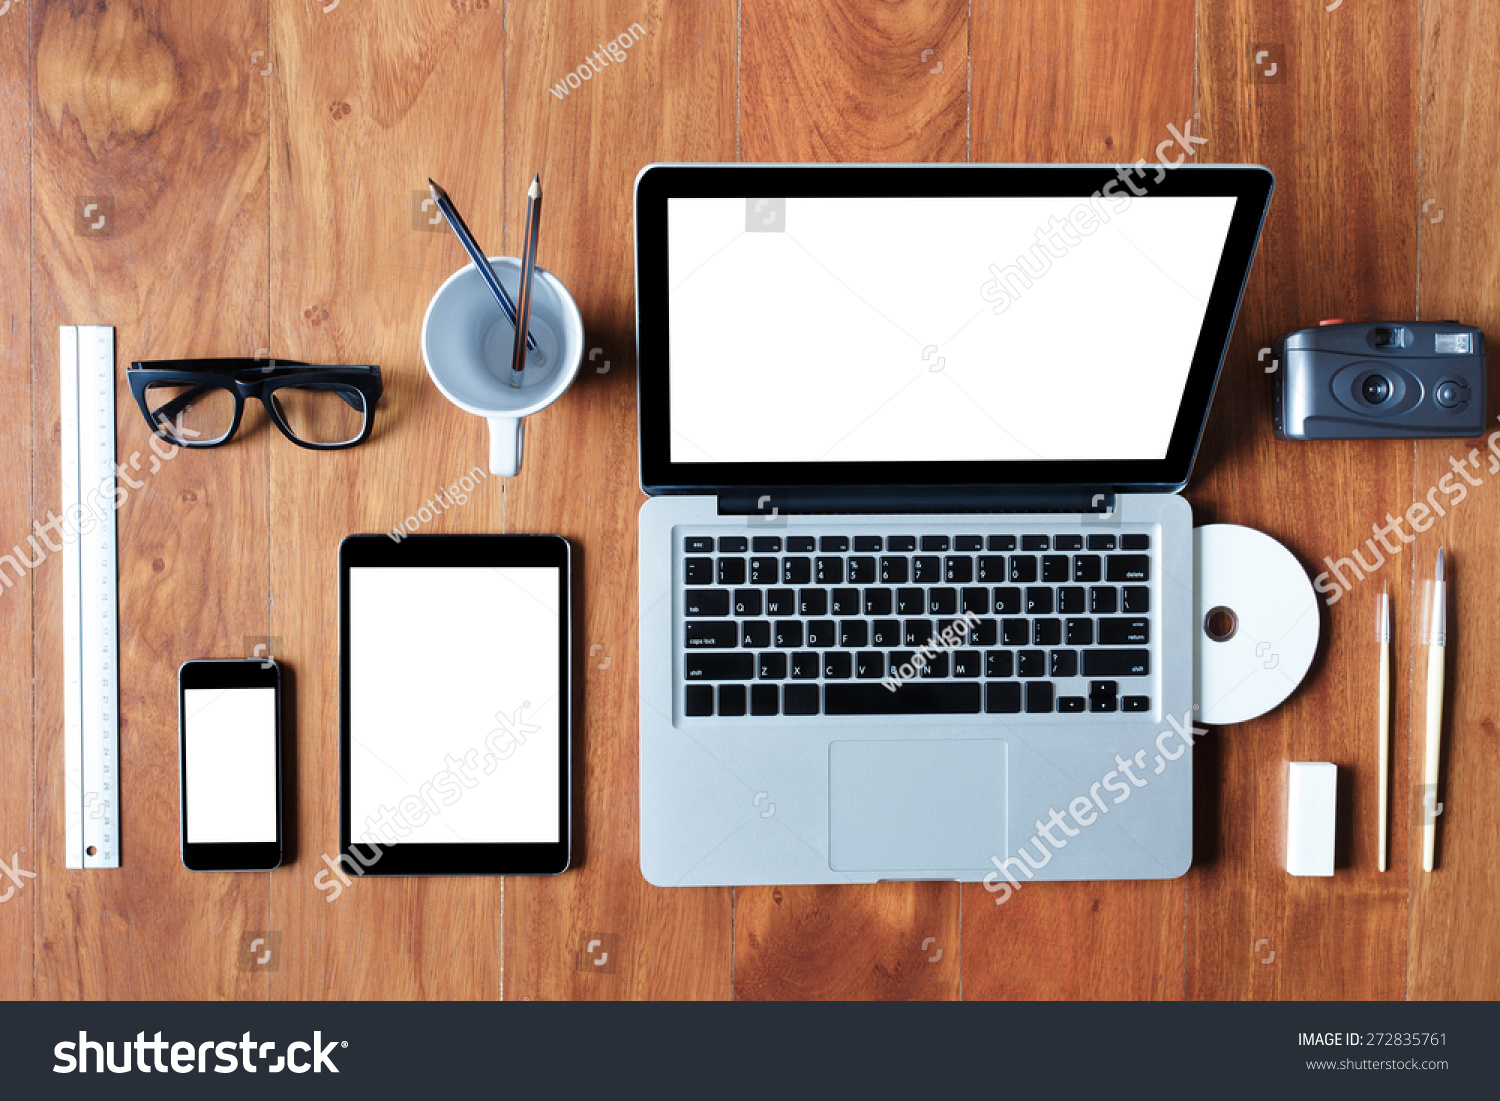 Flat Lay Laptop Tablet Phone On Stock Photo 272835761